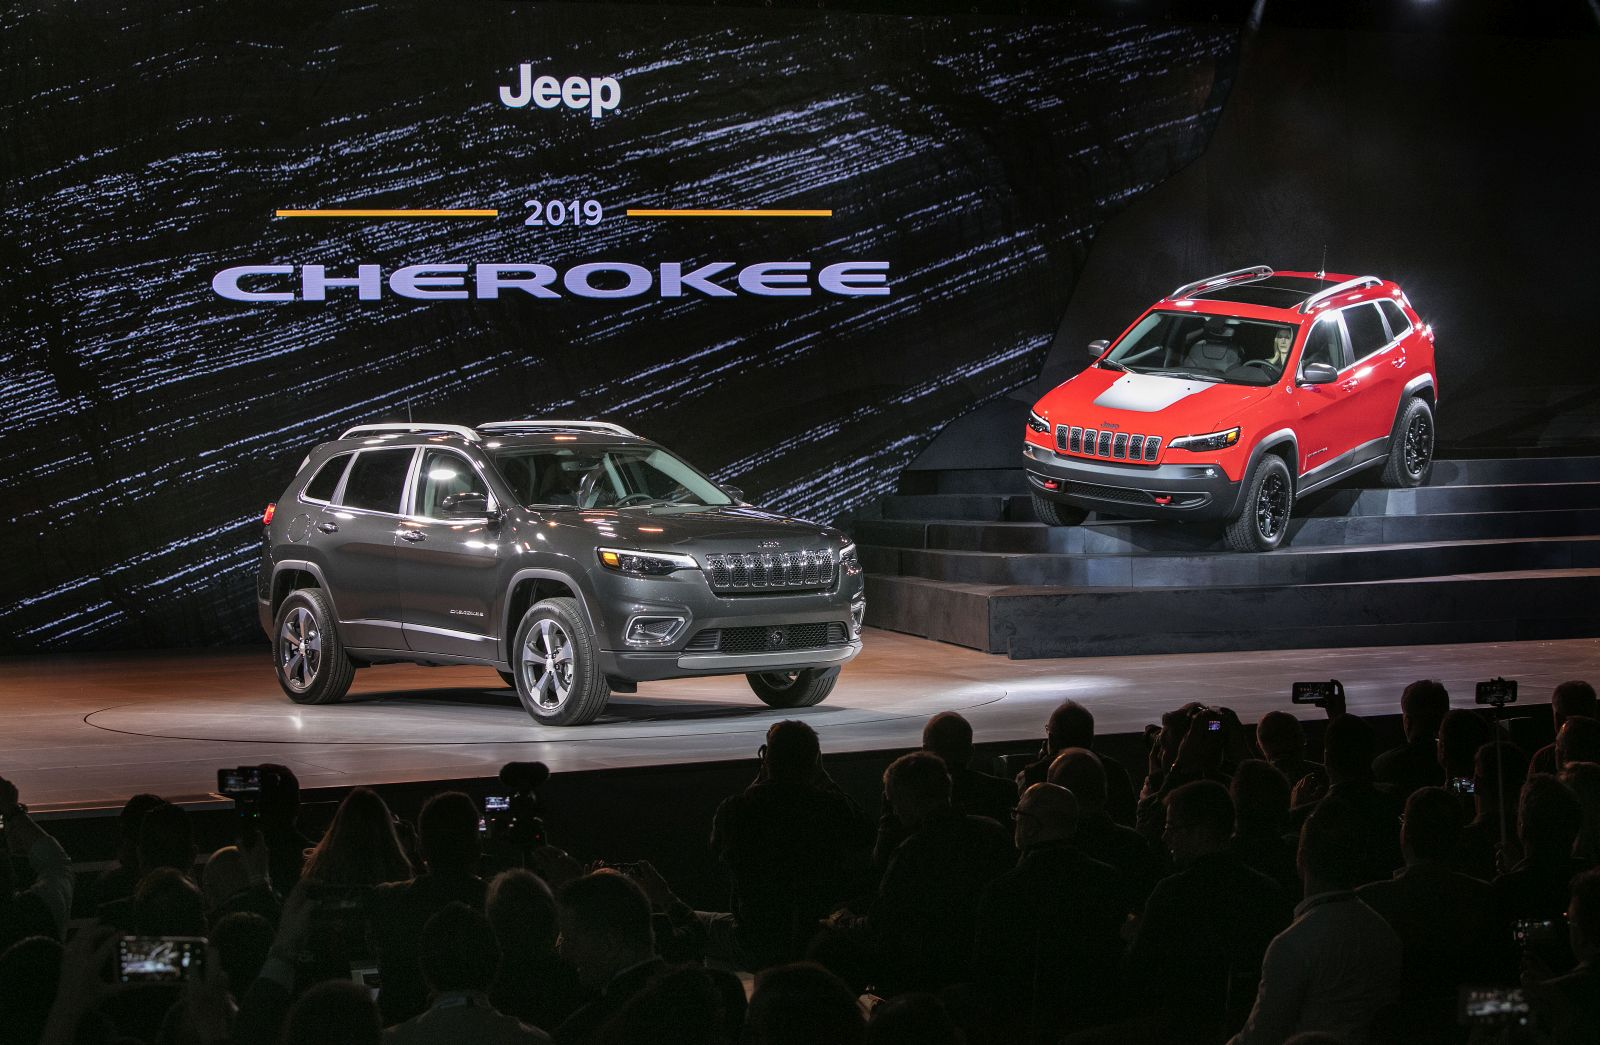 New 2019 Jeep Cherokee Debuts At The 2018 Detroit Auto ...